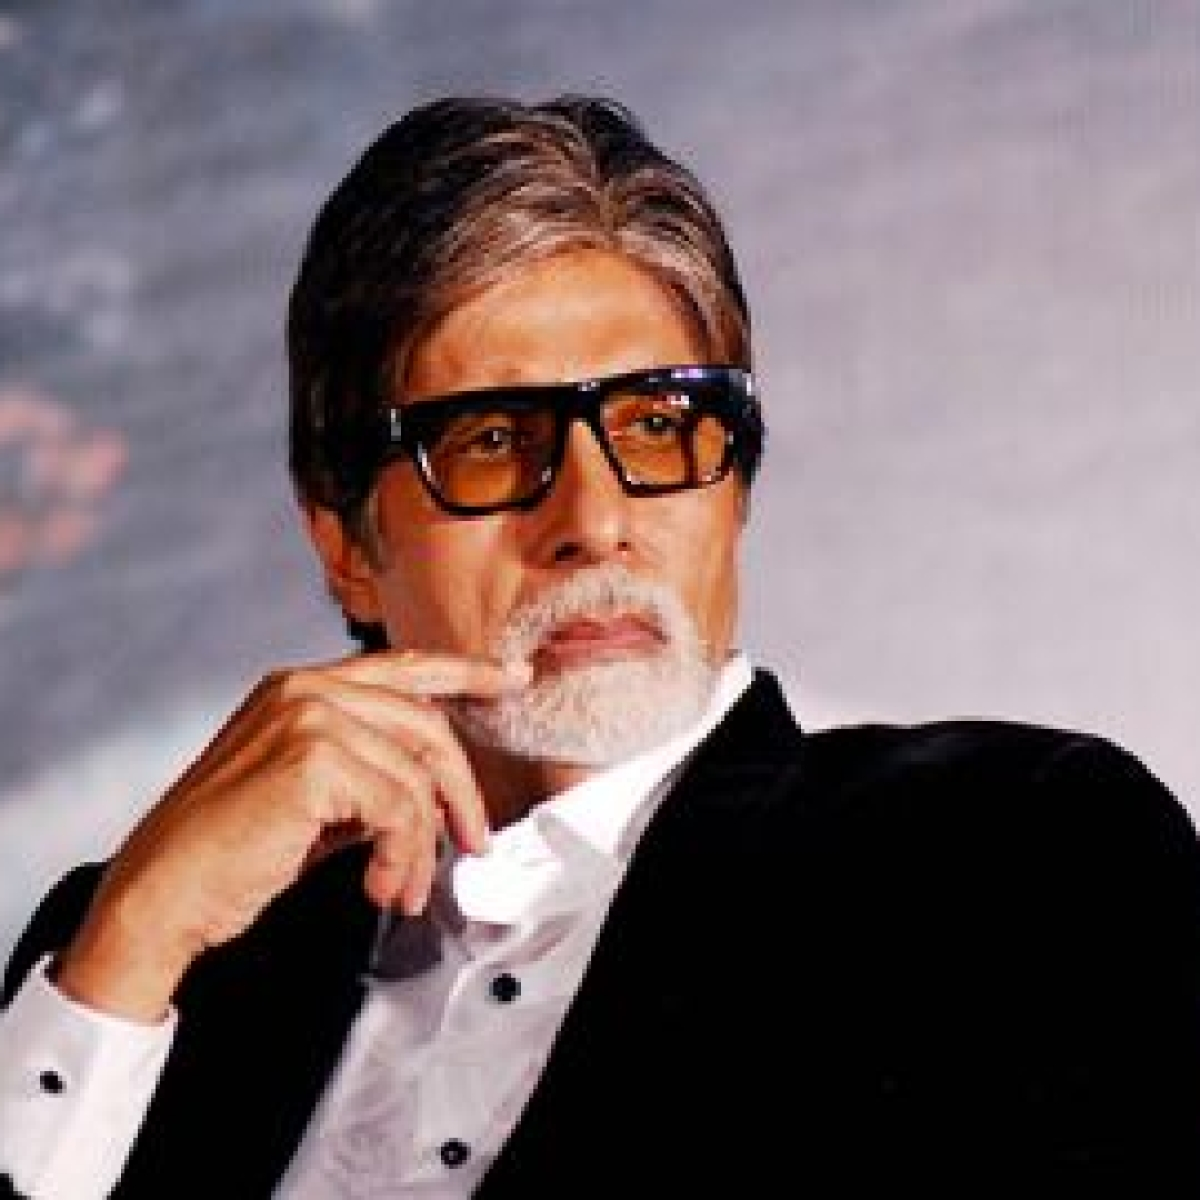 Bat enters Amitabh Bachchan's Mumbai house, actor says, 'Corona peecha chodh hi nahin raha'